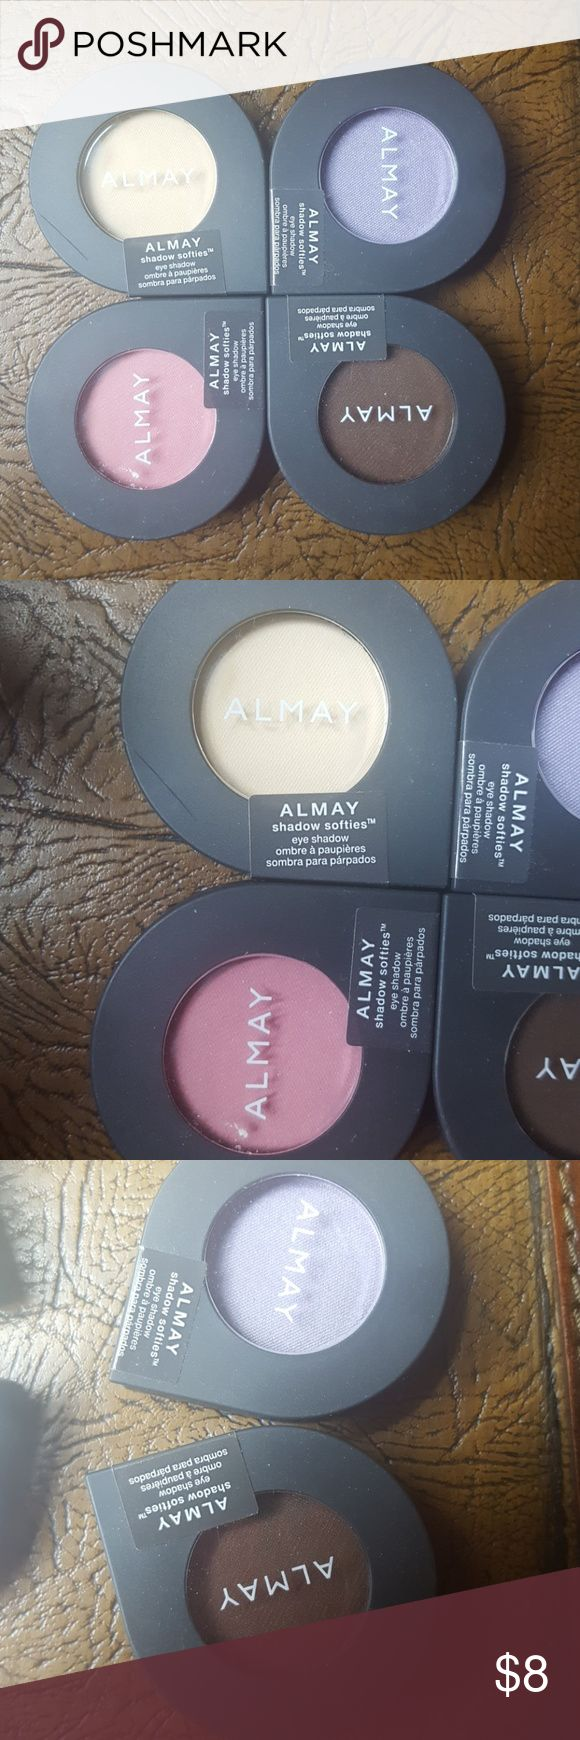 Almay eyeshadow 4 beautiful eyeshadows that will make your eyes pop! Almay Makeup Eyeshadow